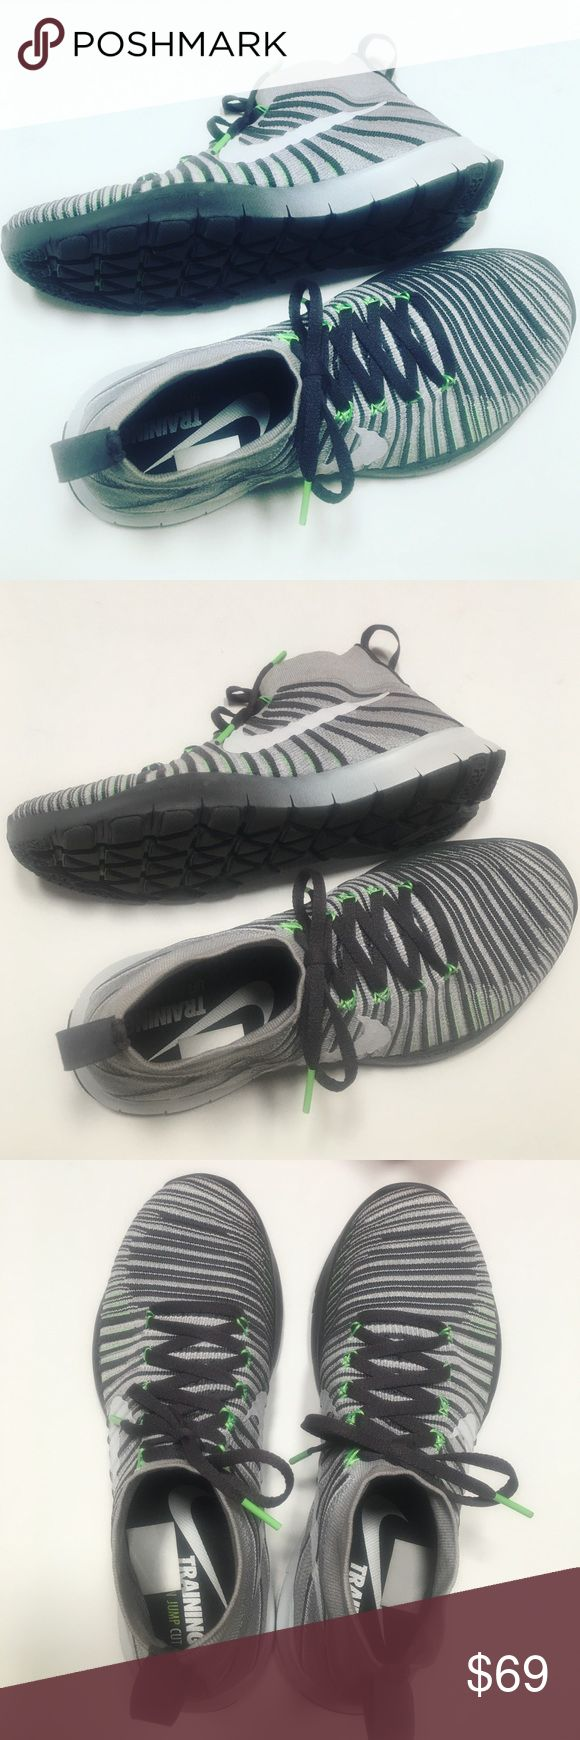 Like New Nike Free Train Force Fly Knit Designed for training. I purchased these to workout. I wear a size 11 in women's shoes but I am actually a 10 and a half. I can wear a size 9 in men's shoes but prefer a size 10. I go a size up because of the socks I wear and I just want lots of toe space when working out. These shoes are a size 10 but fit like a 9. Like new no visible flaws. So if you are a woman and wear a size 9 in men's sneakers these will be fine. Men I recommend these only if you…